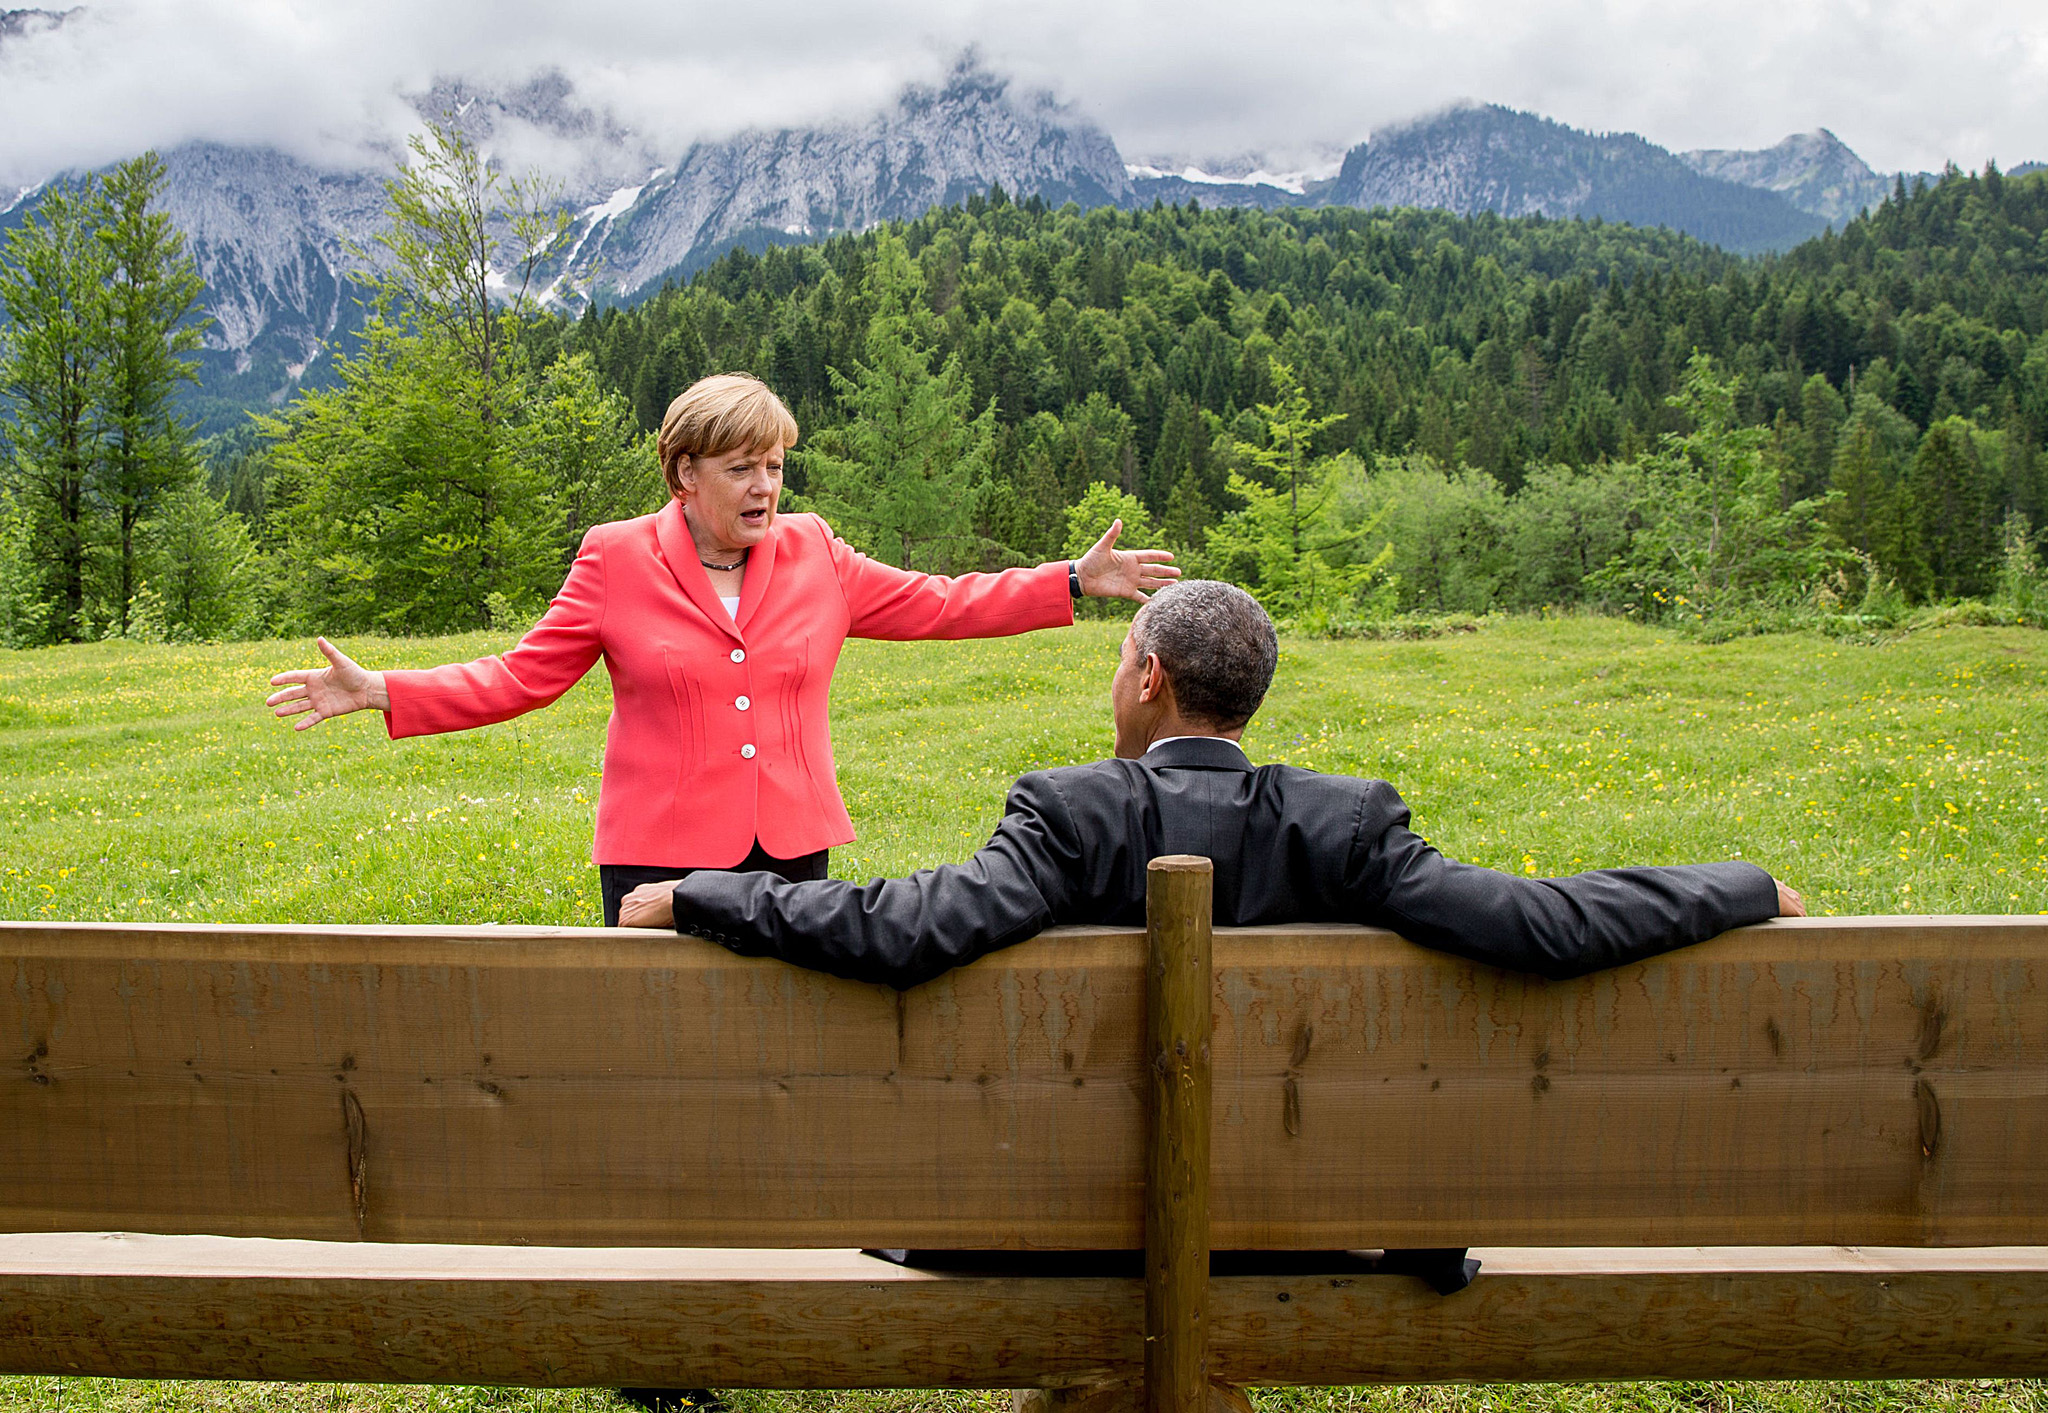 TOPSHOTS Germany's Chancellor Angela Mer...TOPSHOTS Germany's Chancellor Angela Merkel (L) gestures while chatting with US President  Barack Obama sitting on a bench outside the Elmau Castle after a working session of a G7 summit near Garmisch-Partenkirchen, southern Germany, on June 8, 2015. AFP PHOTO / POOL / MICHAEL KAPPELERMICHAEL KAPPELER/AFP/Getty Images